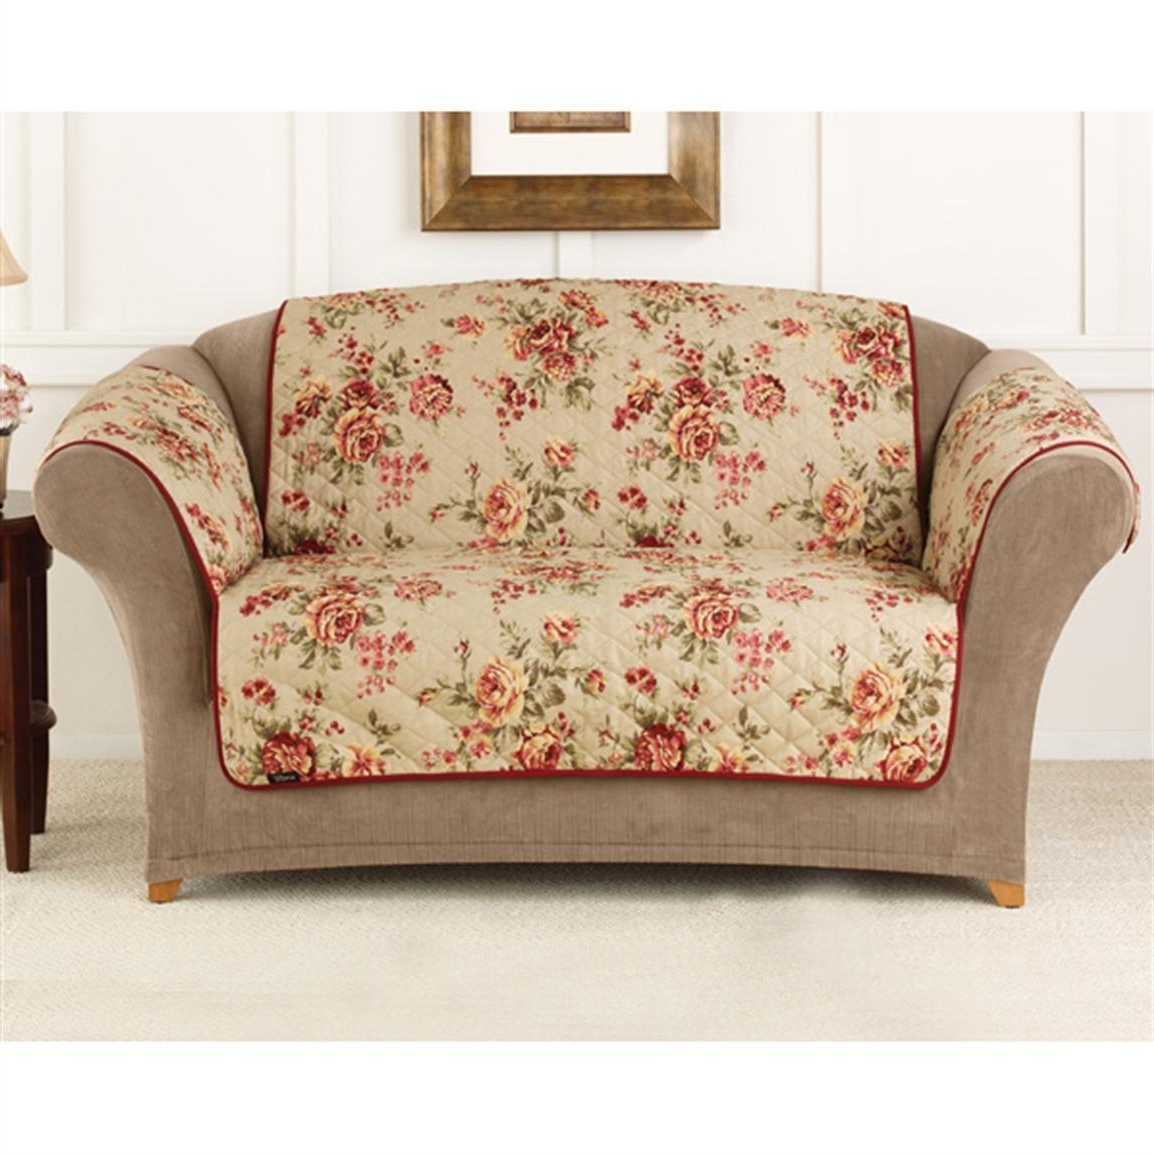 Furniture : Covers For Sofas And Couch Sure Fit Lexington Floral With Regard To Most Up To Date Chintz Covered Sofas (View 4 of 15)